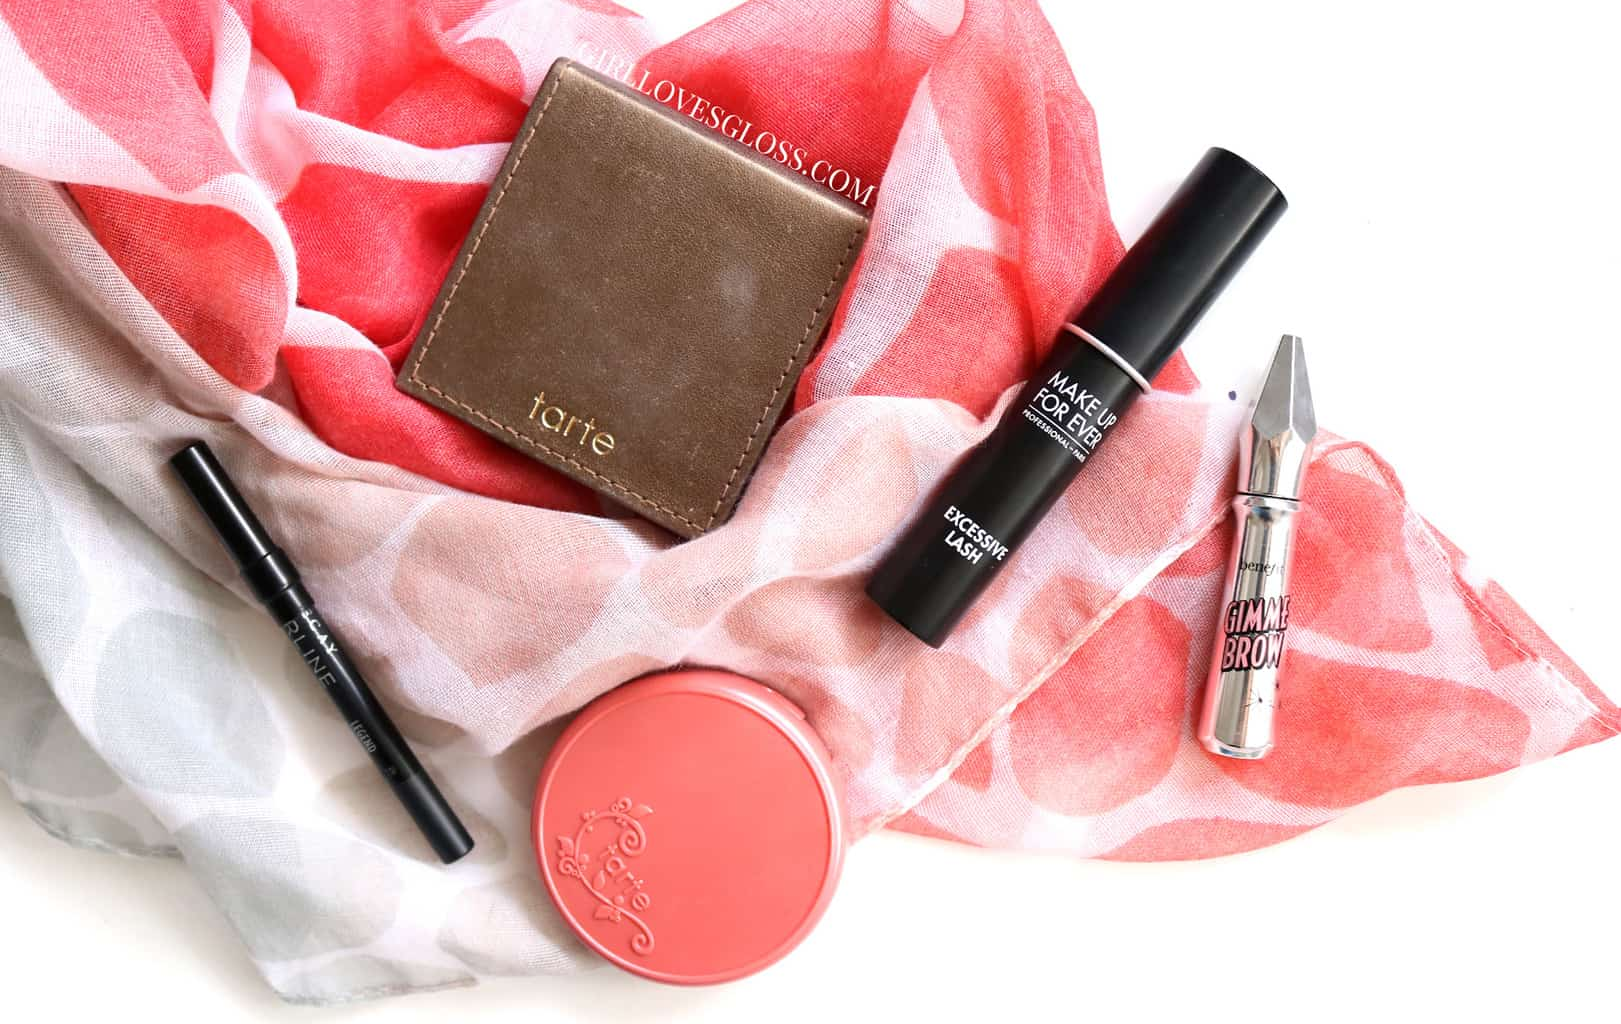 Heat Proof Beauty Products